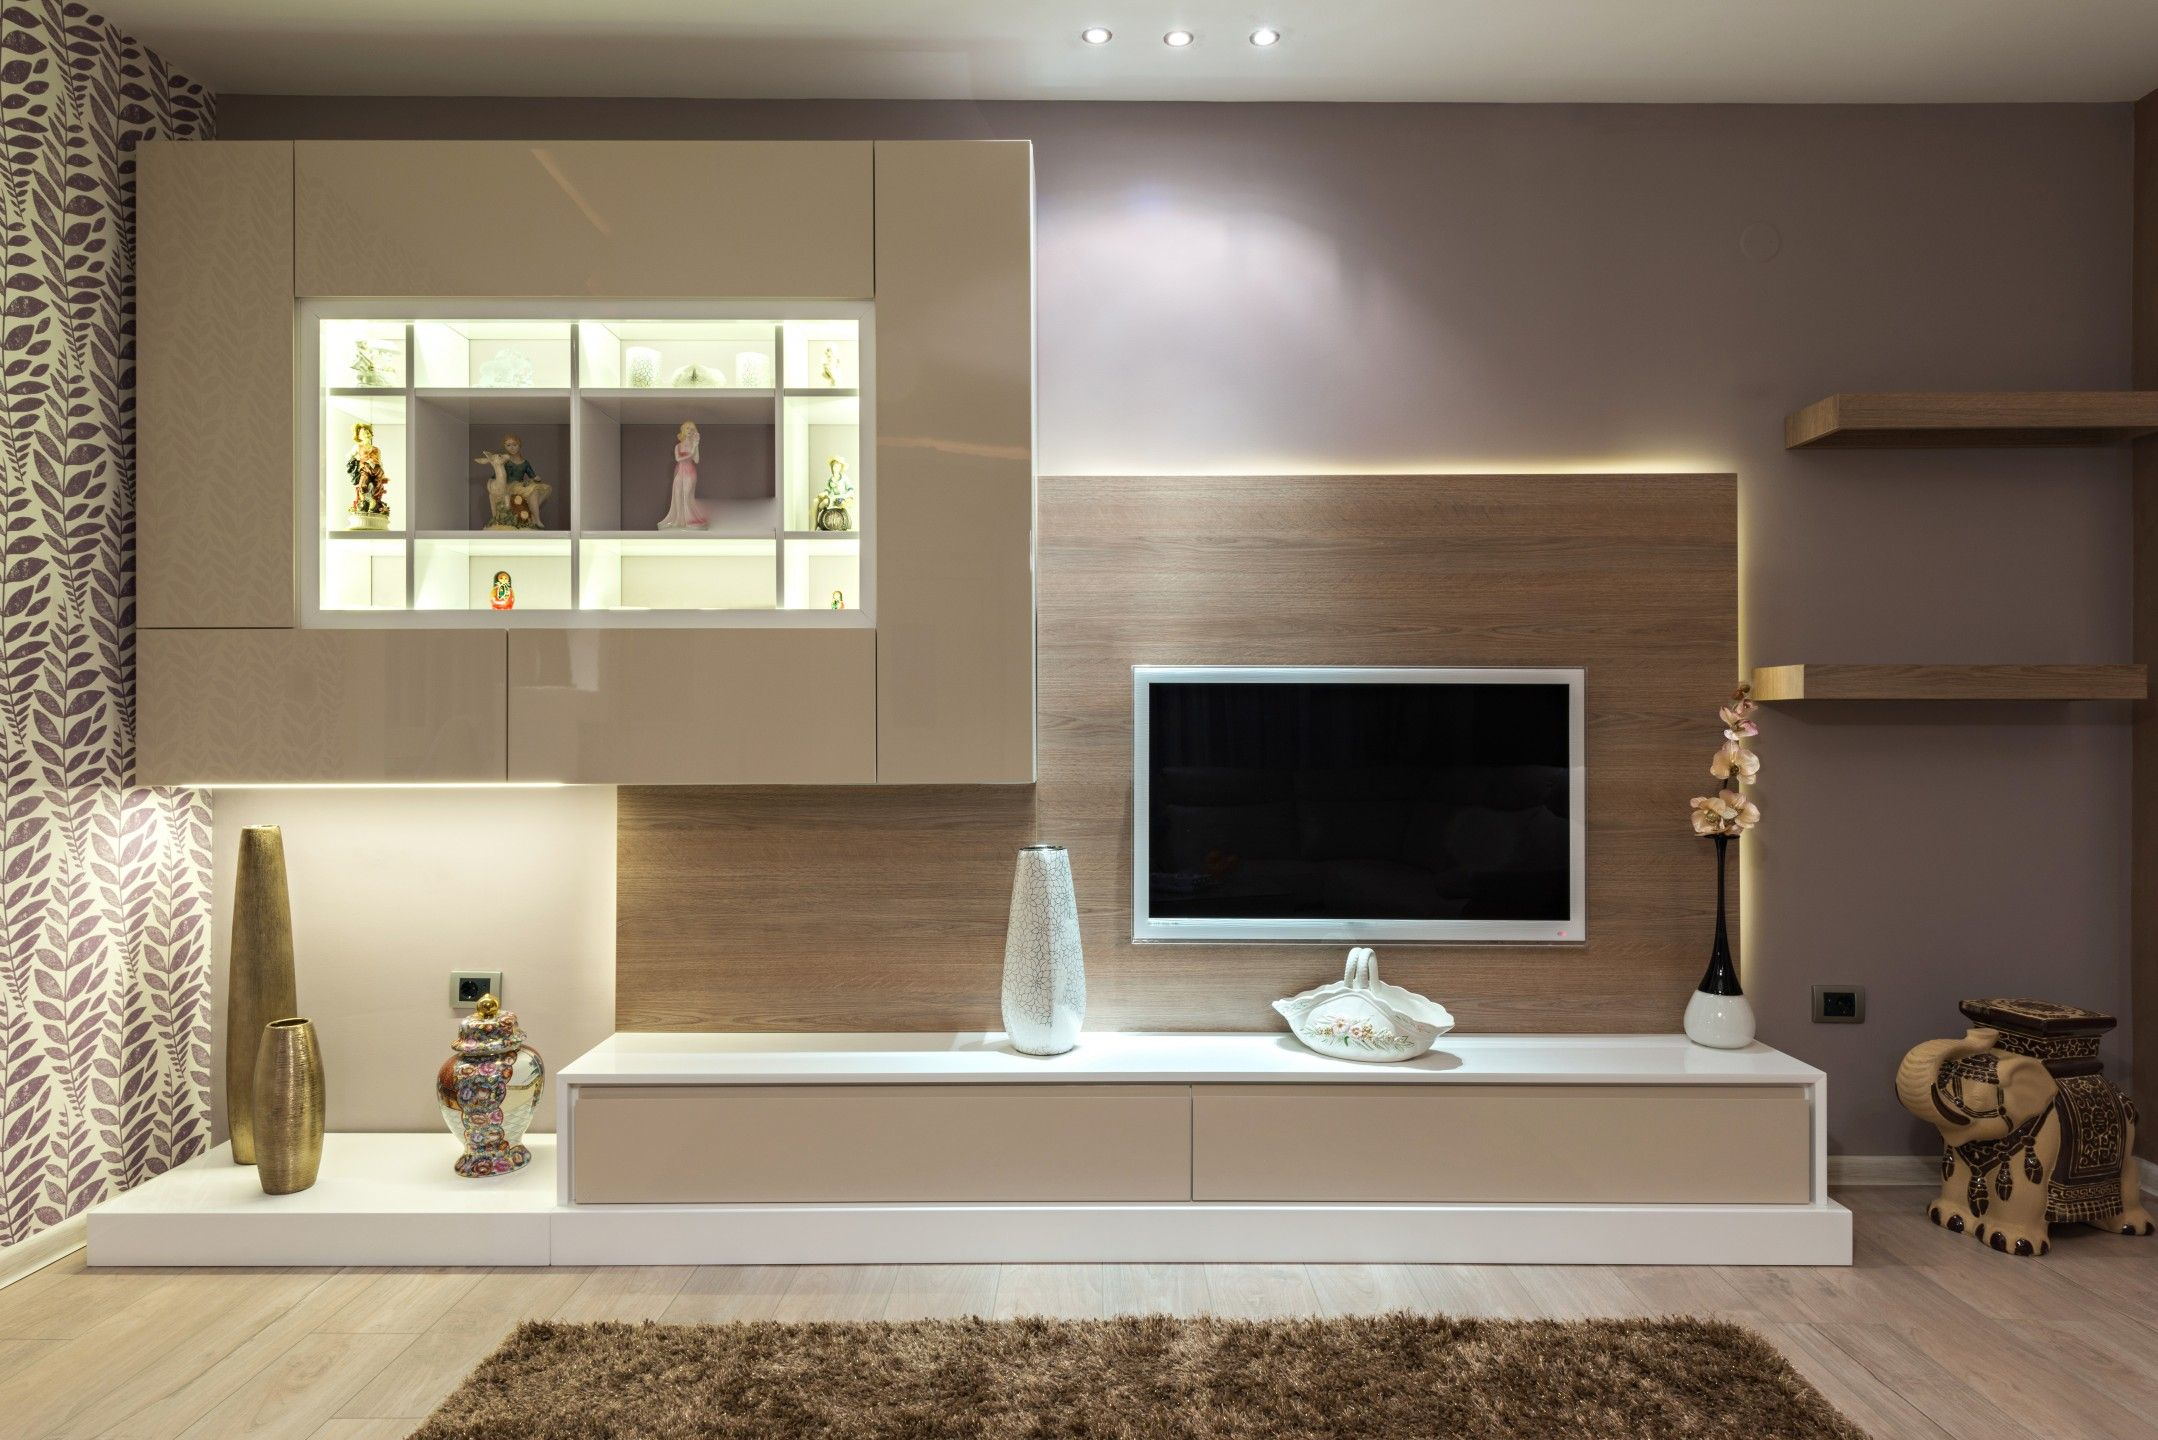 Captivating New Lcd Cabinet Design Idea Id1021   Lcd Cabinet Unit Design Ideas   Home  Interior Disigns · Modedesign InstituteTv Gerät ...